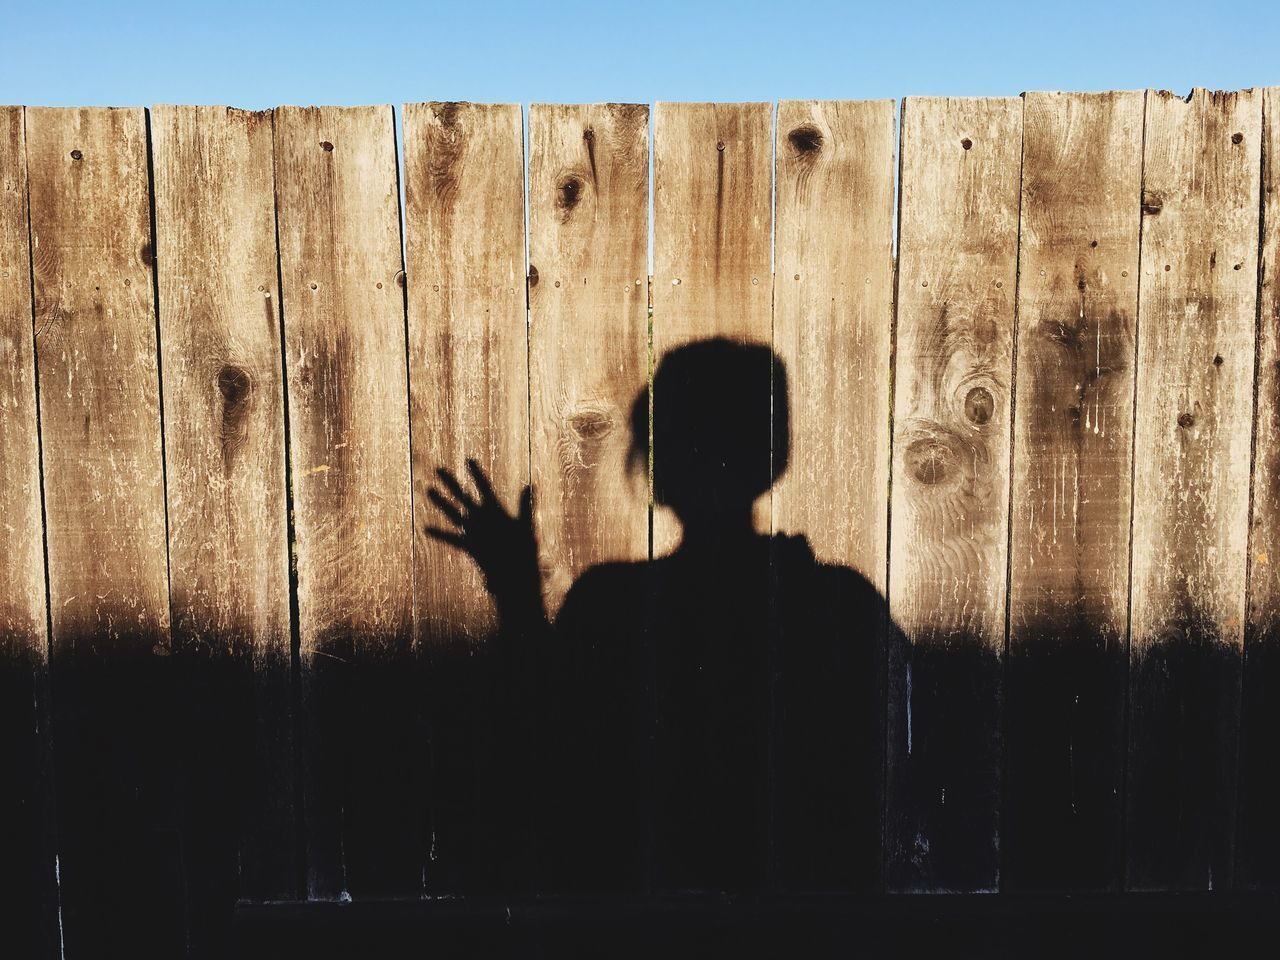 Shadow of person gesturing in front of wooden fence